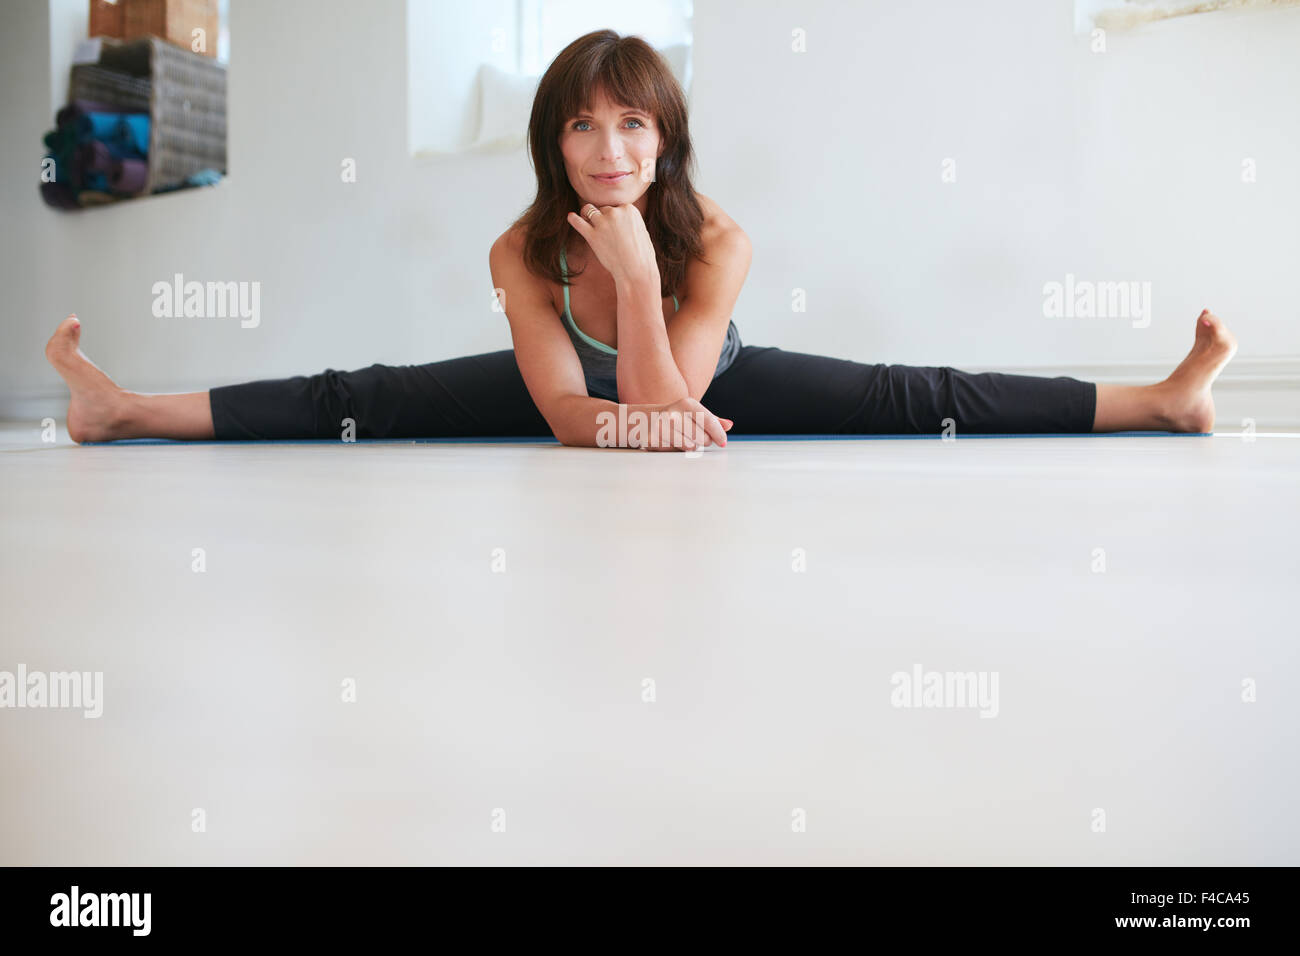 Portrait of flexible woman doing Upavistha Konasana exercise. Female yoga instructor practices yoga at gym. - Stock Image